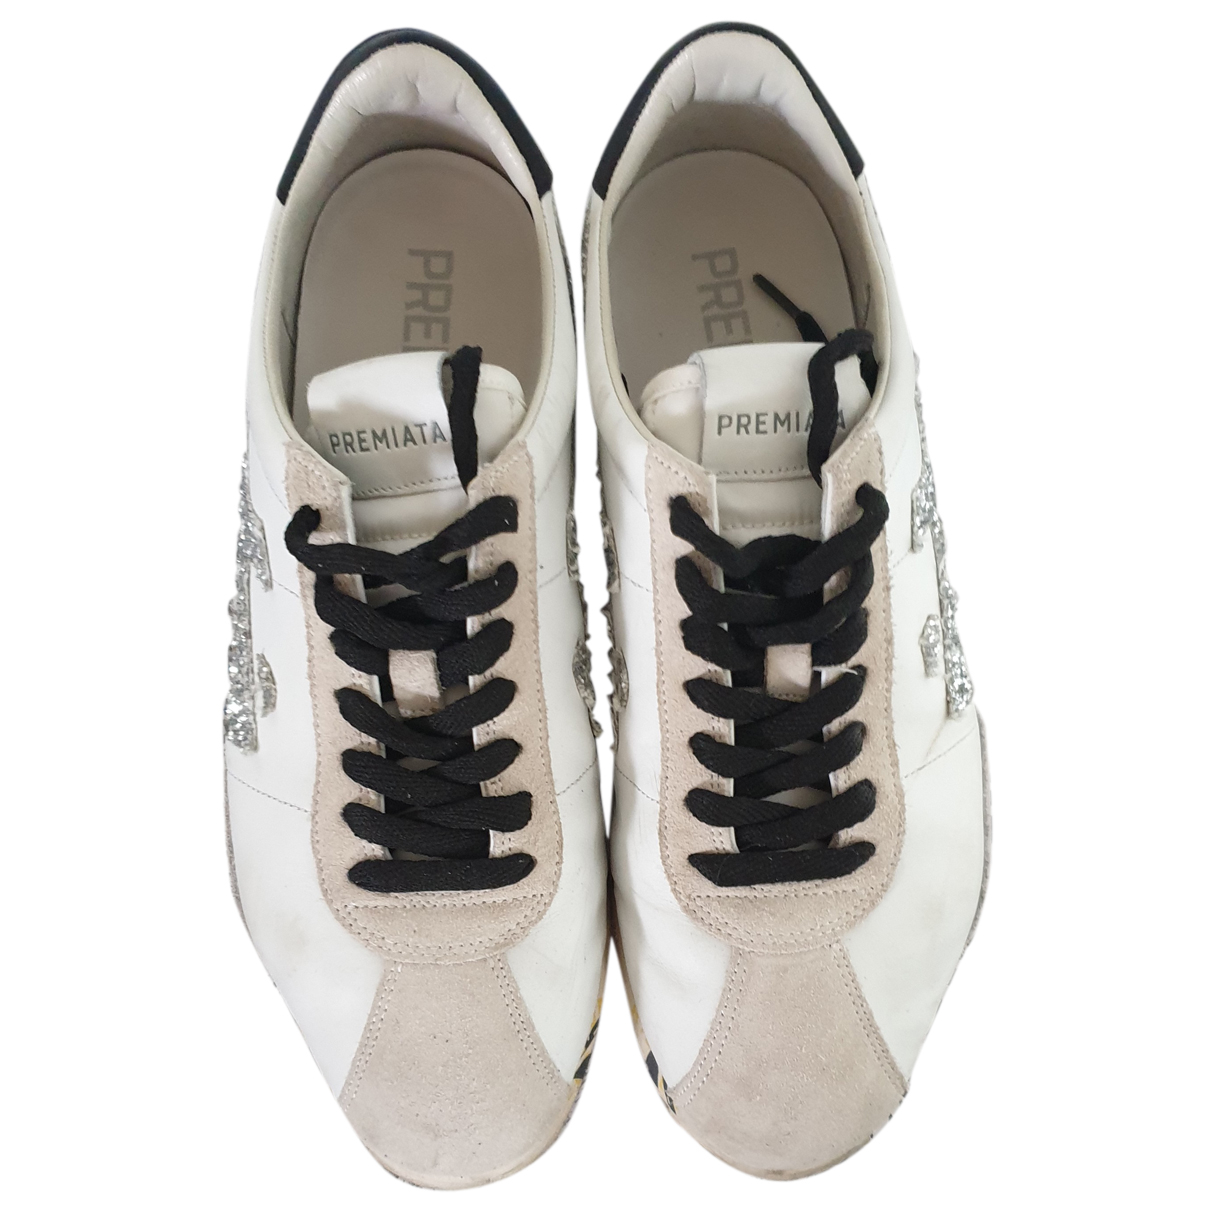 Premiata \N Sneakers in  Weiss Leder